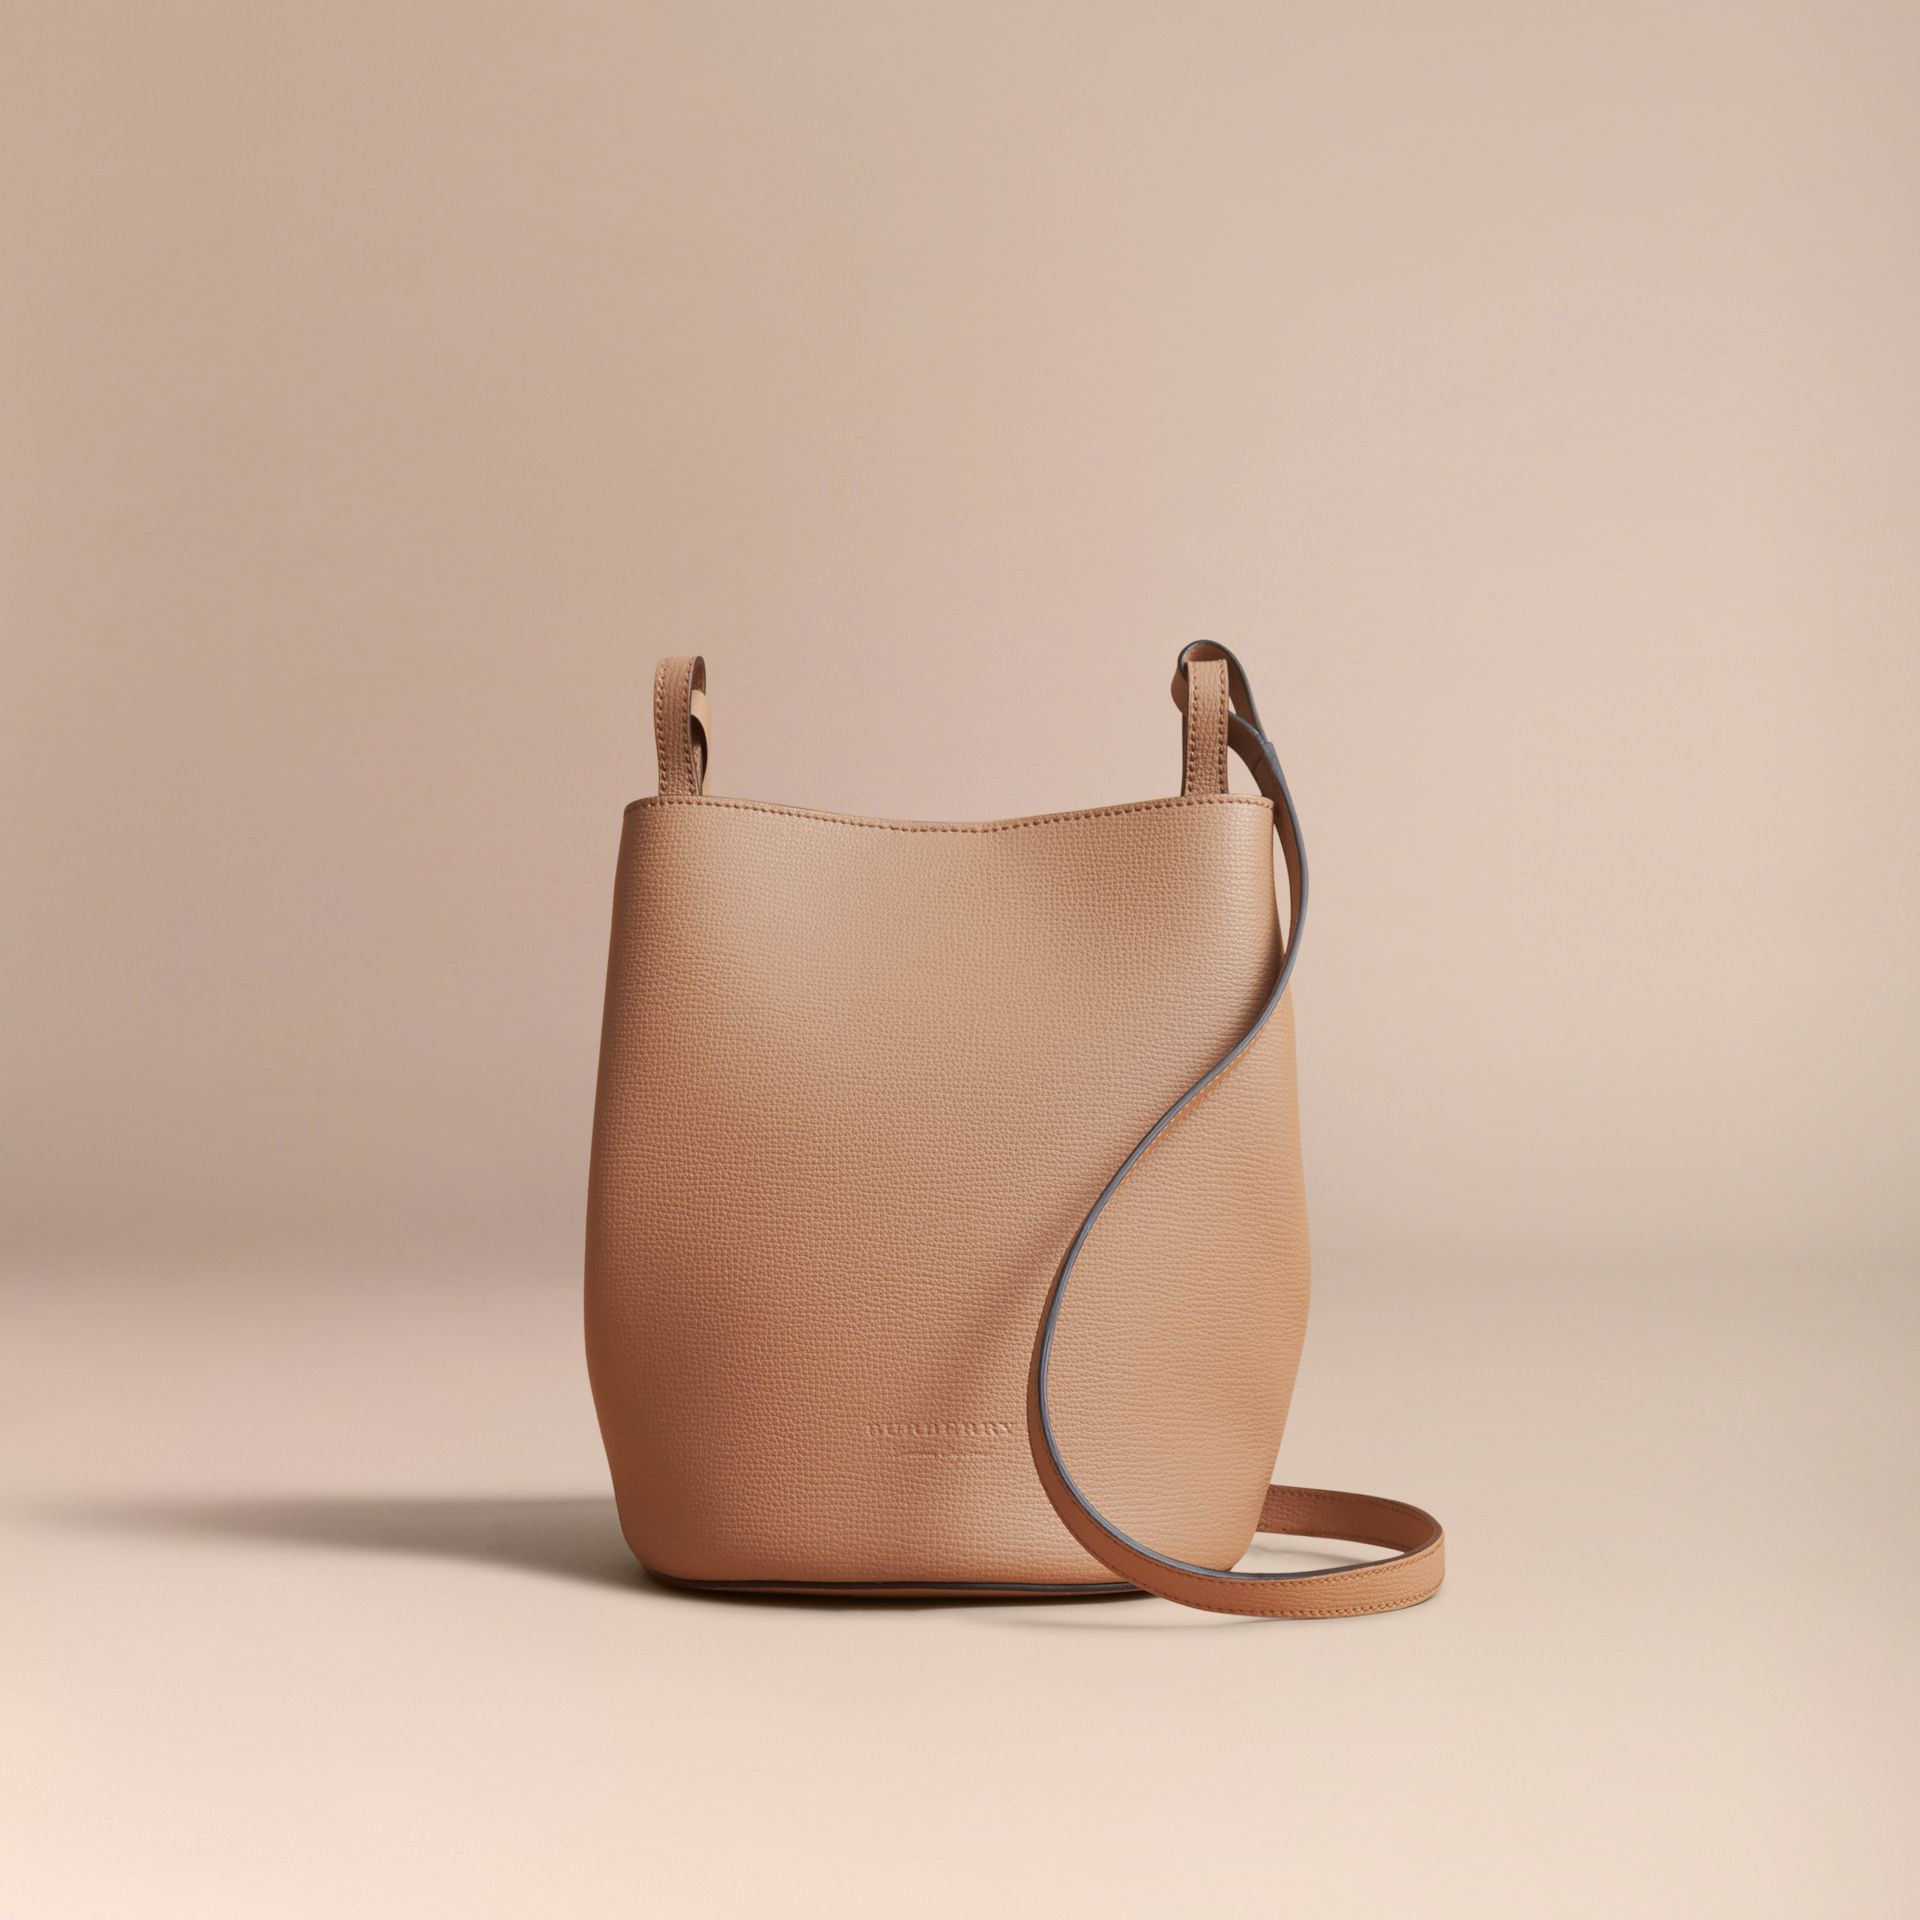 Leather and Haymarket Check Crossbody Bucket Bag in Mid Camel - Women | Burberry - gallery image 7